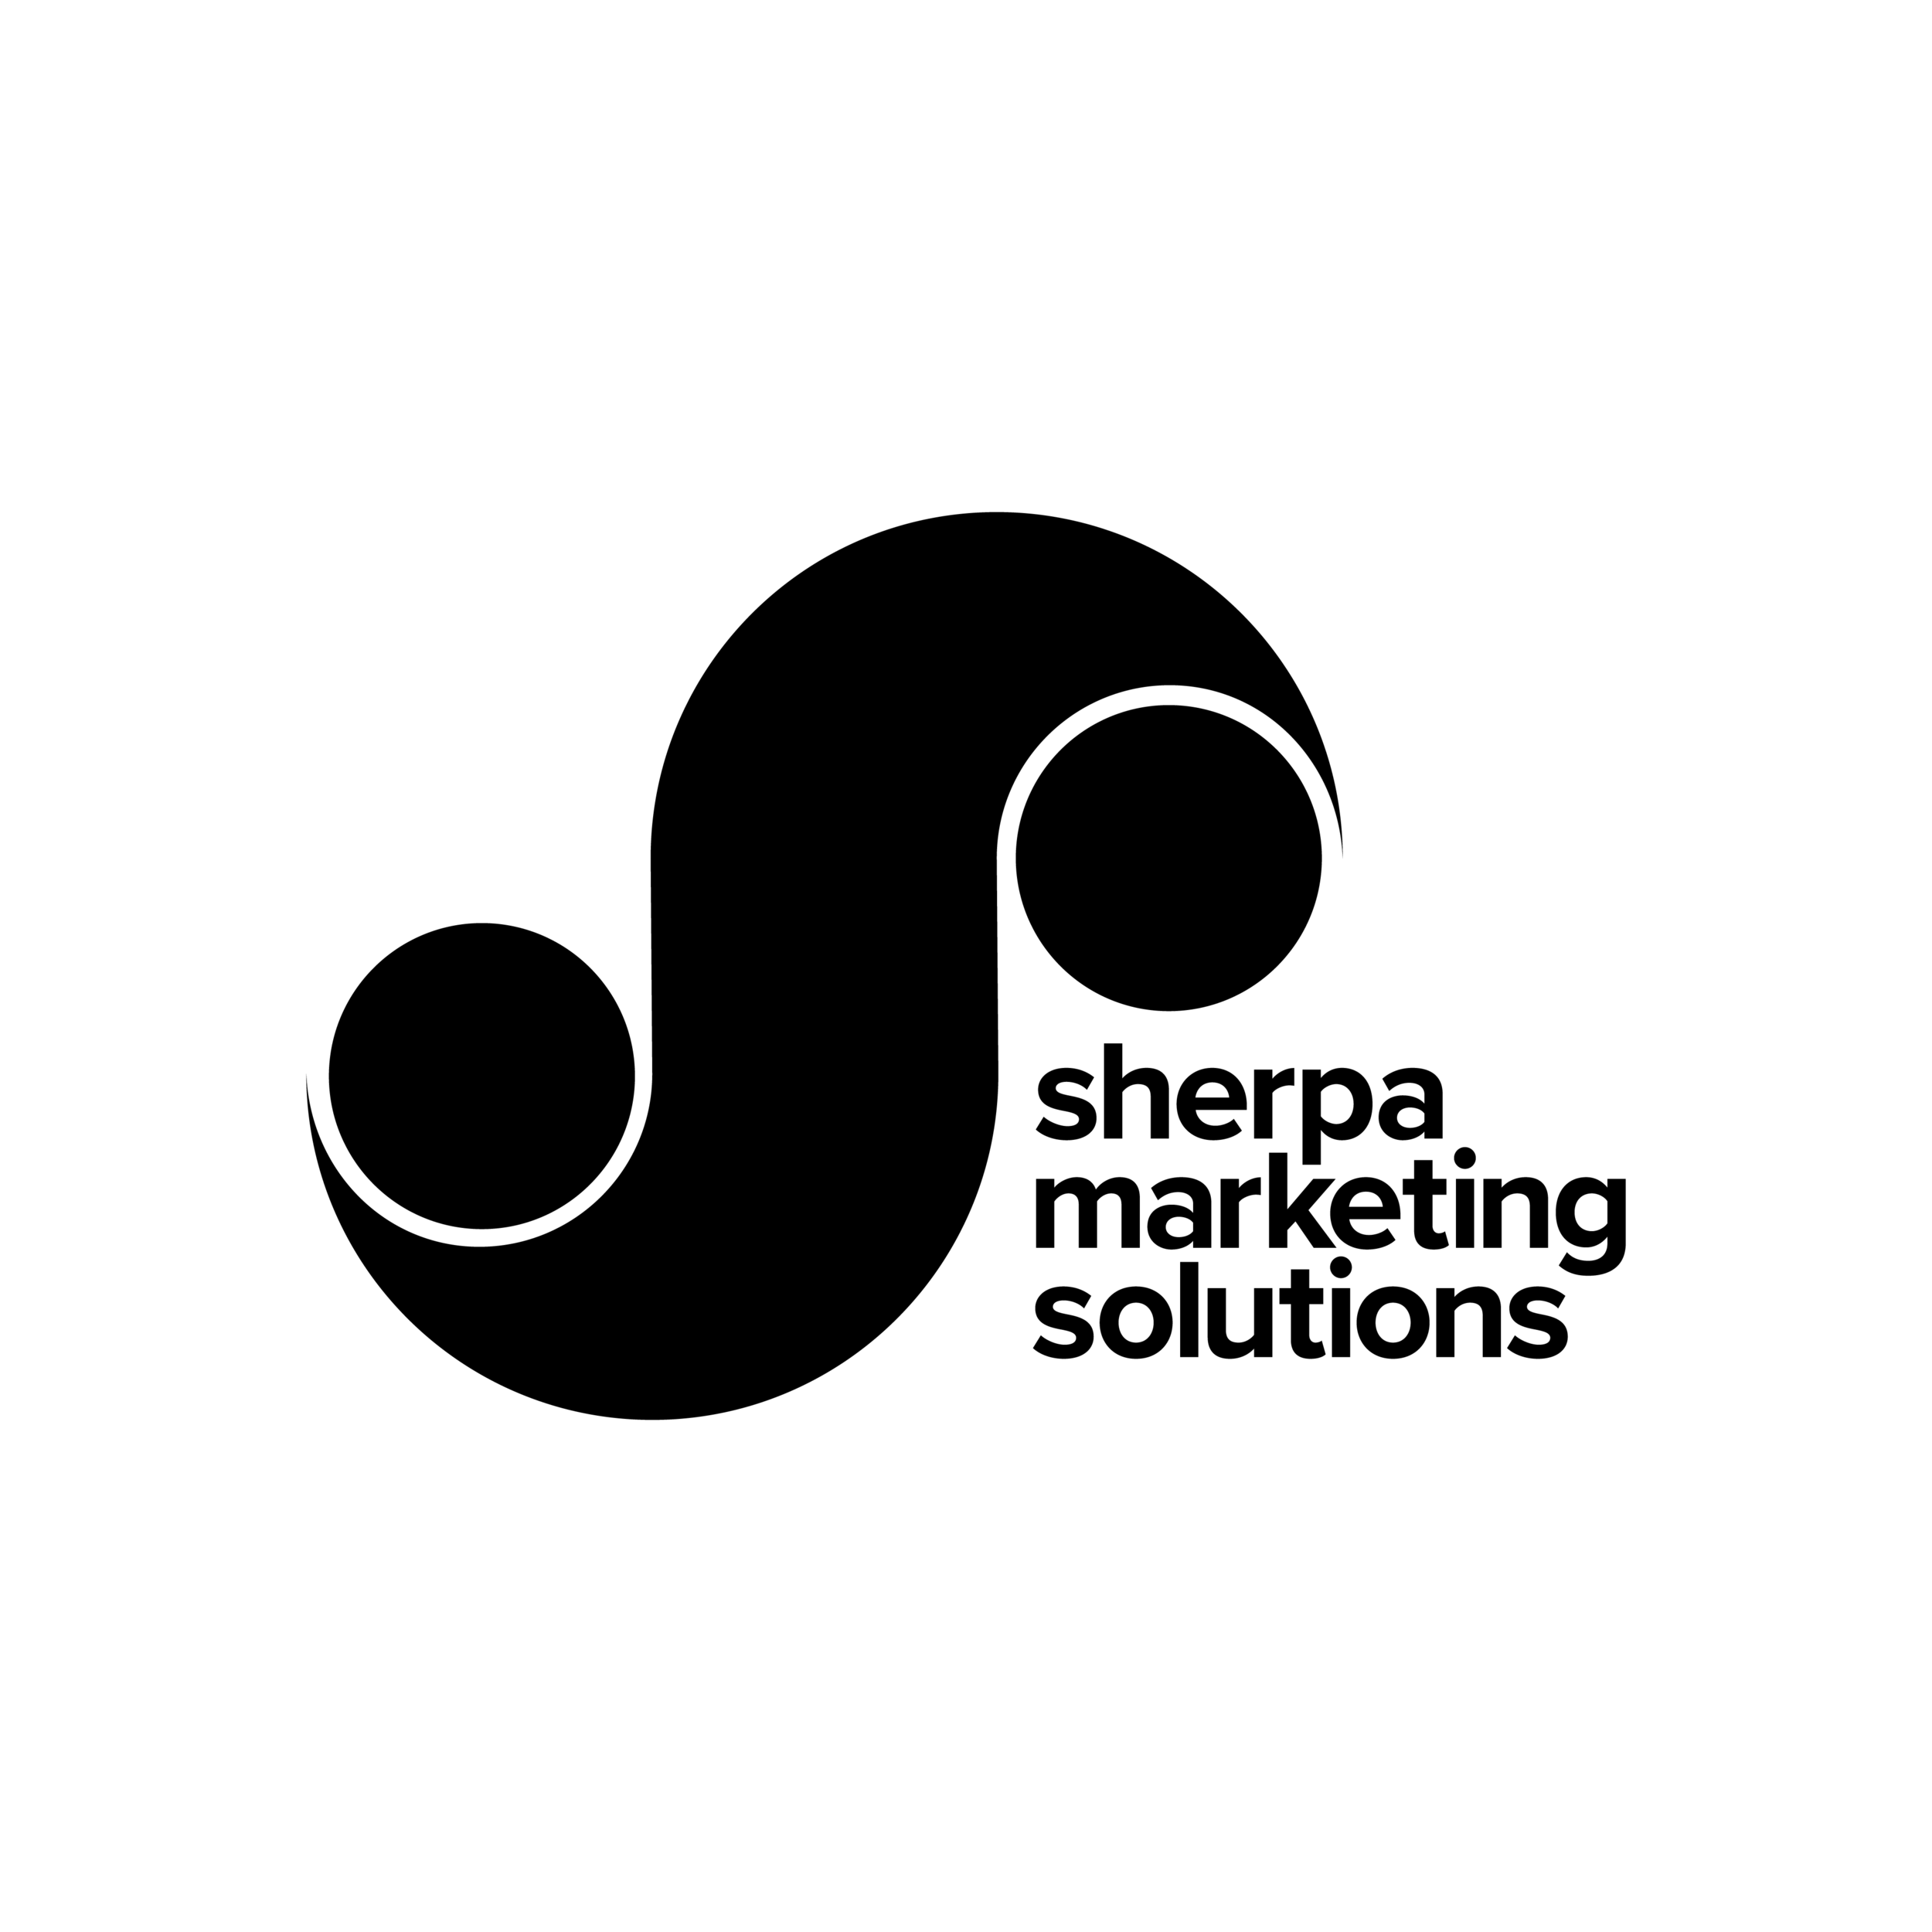 SMS_logo_BLK.png